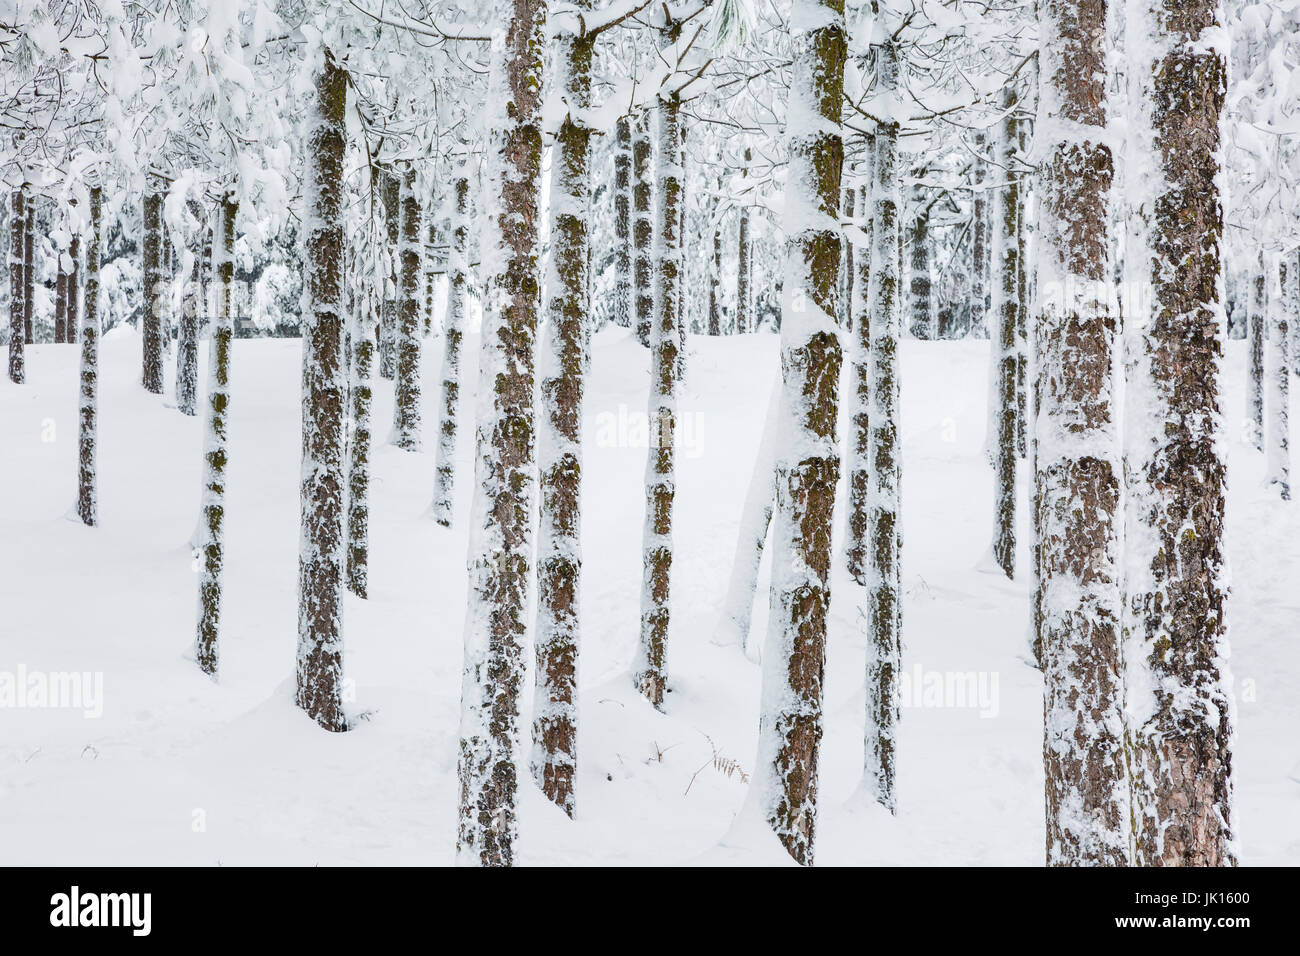 Conifer forest in winter. Saldropo, Gorbeia Natural Park, Biscay, Spain, Europe. - Stock Image